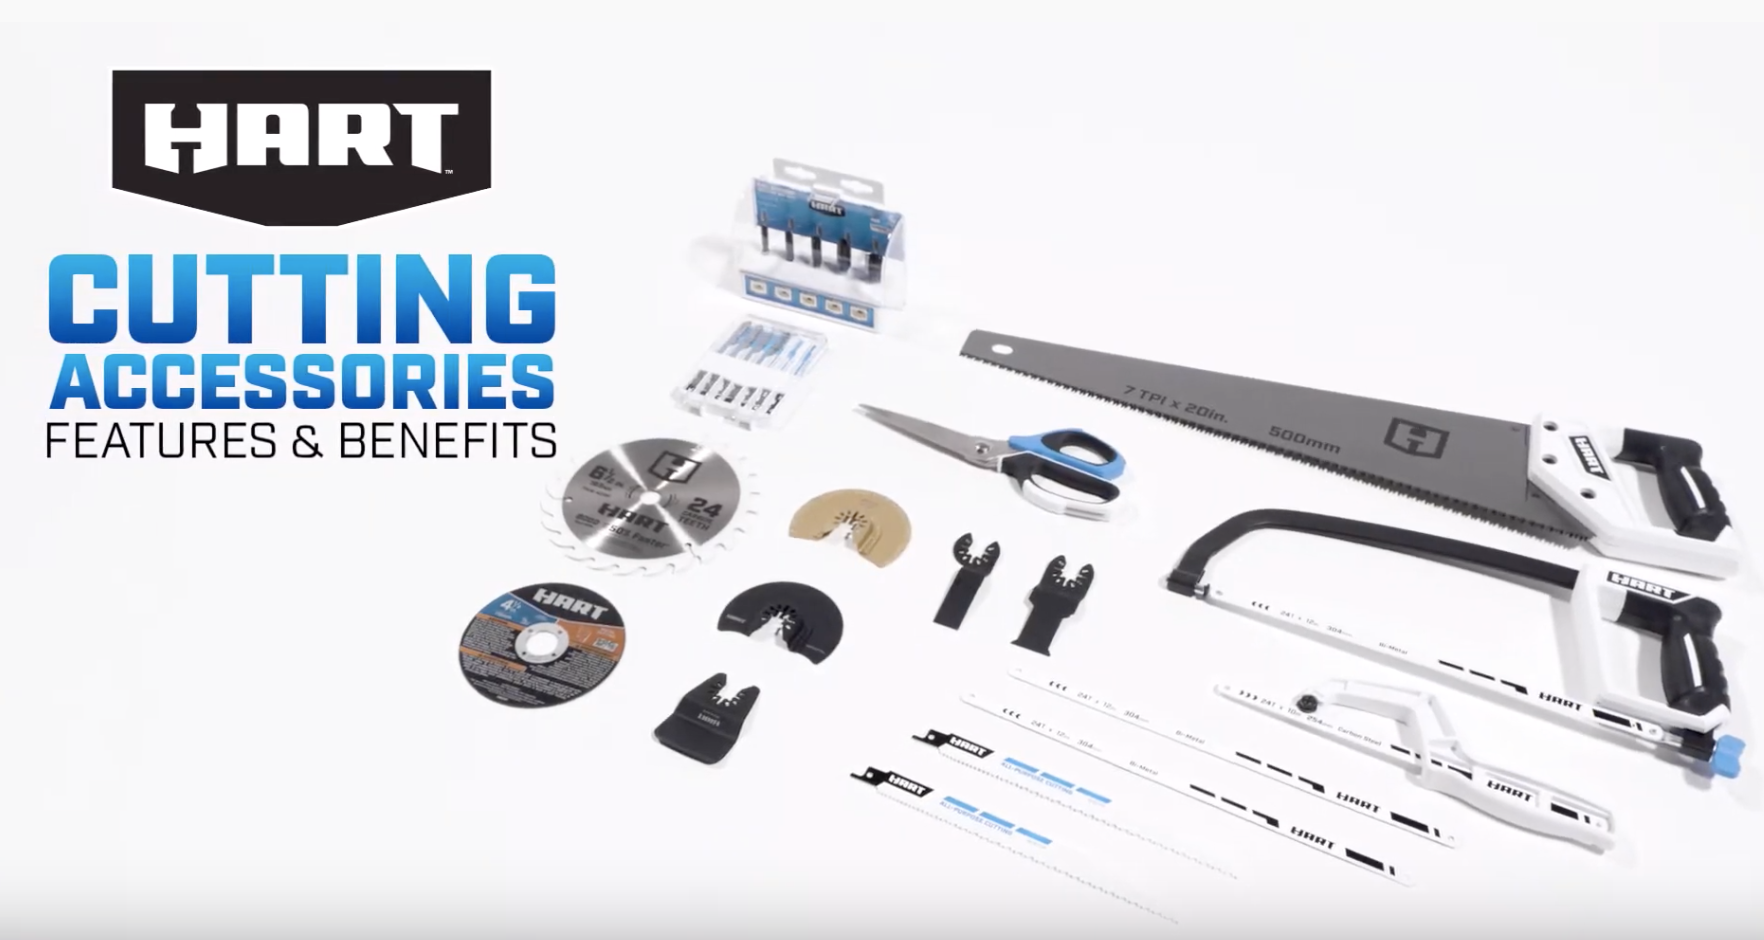 HART Cutting Accessories